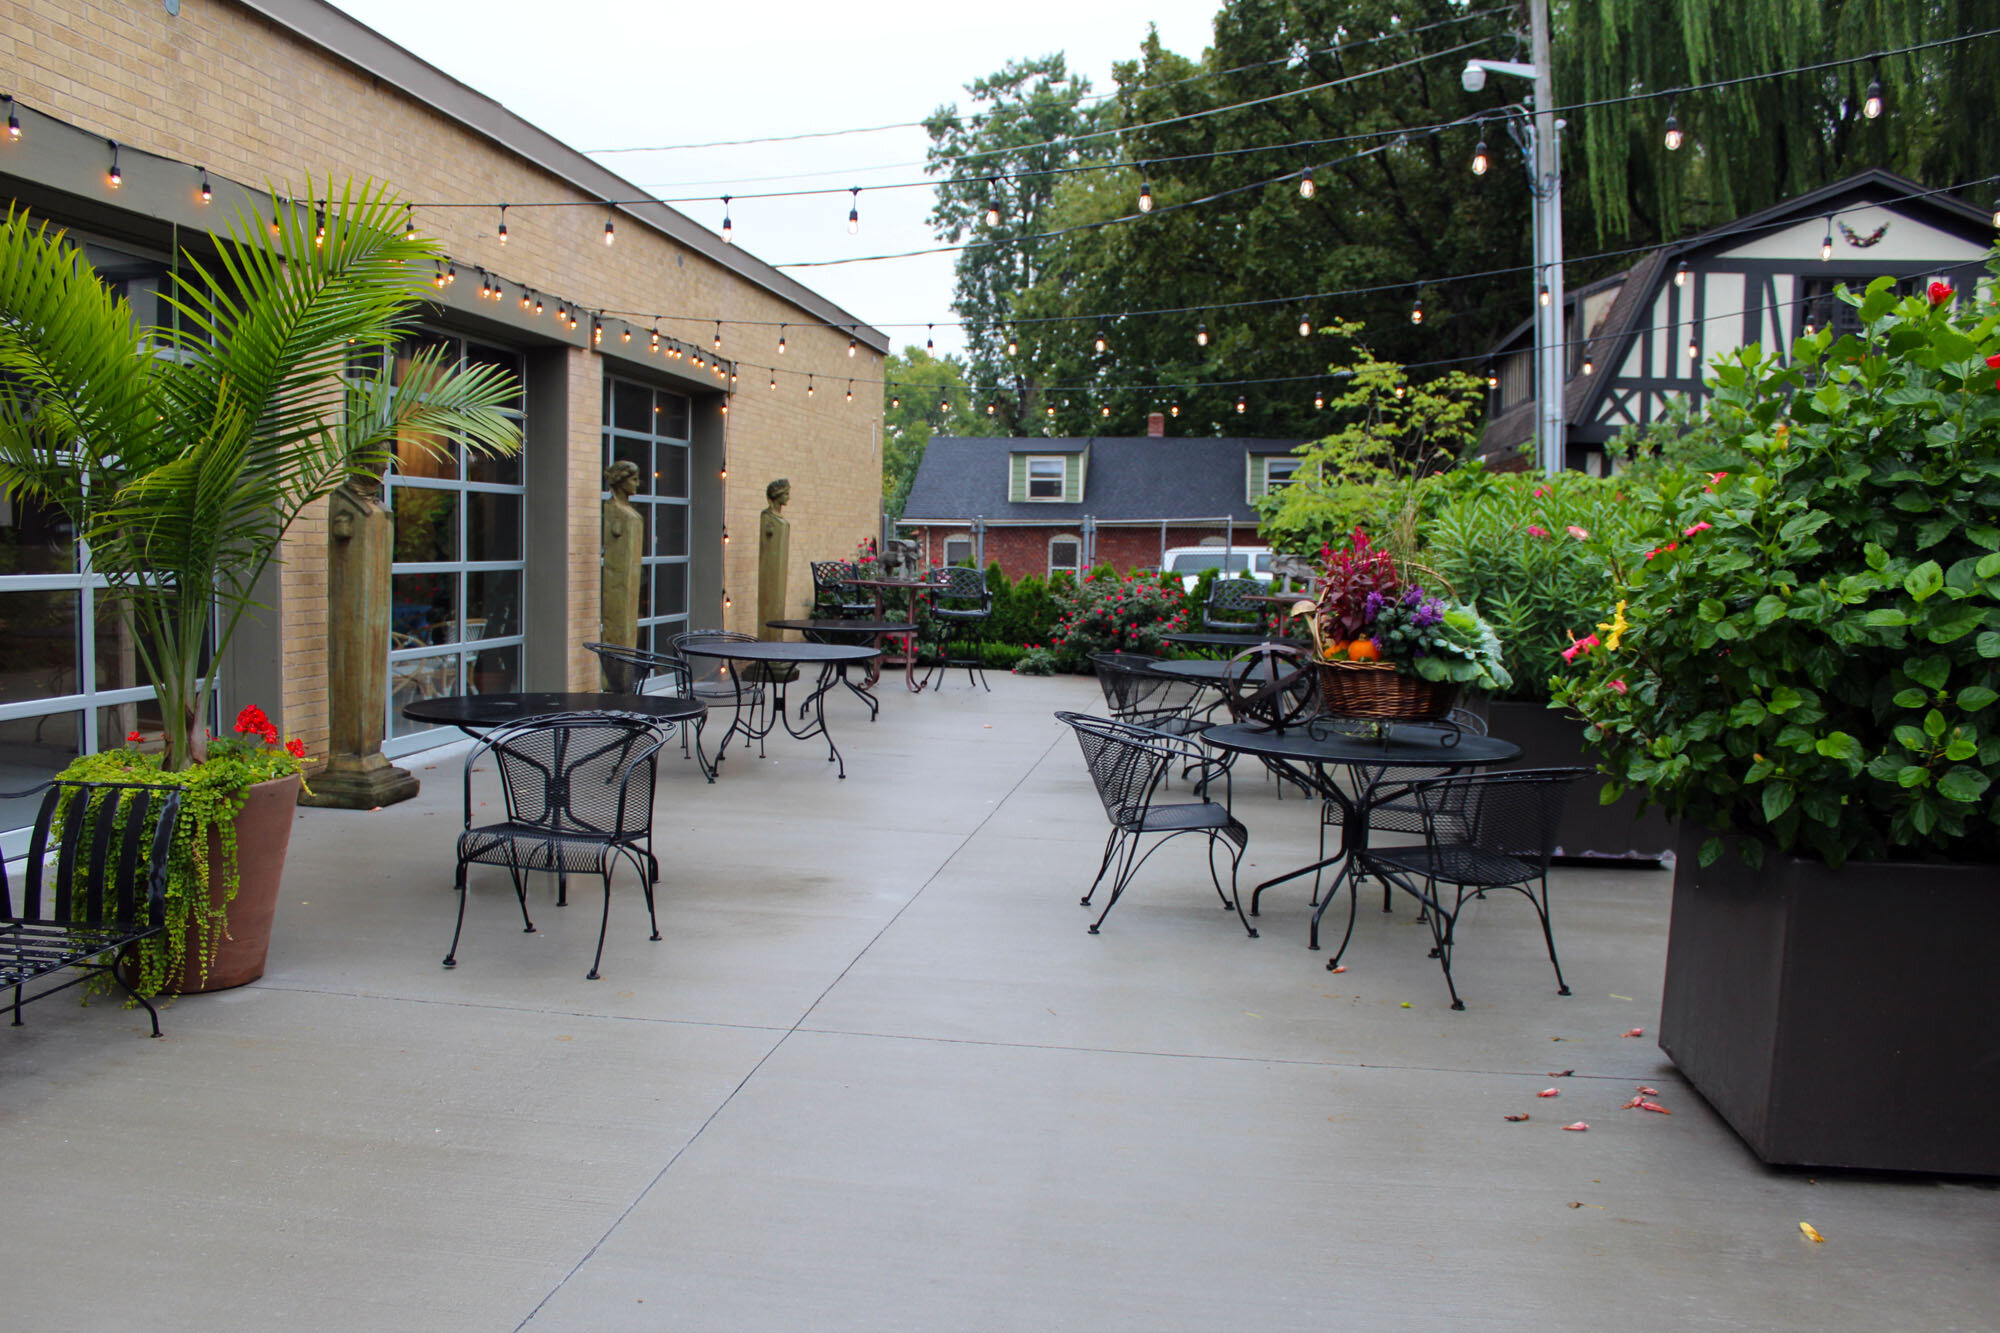 Swan-Dive-Event-Center-outside-patio-Independence-Missouri-by-Vivilore-Restaurant.jpg